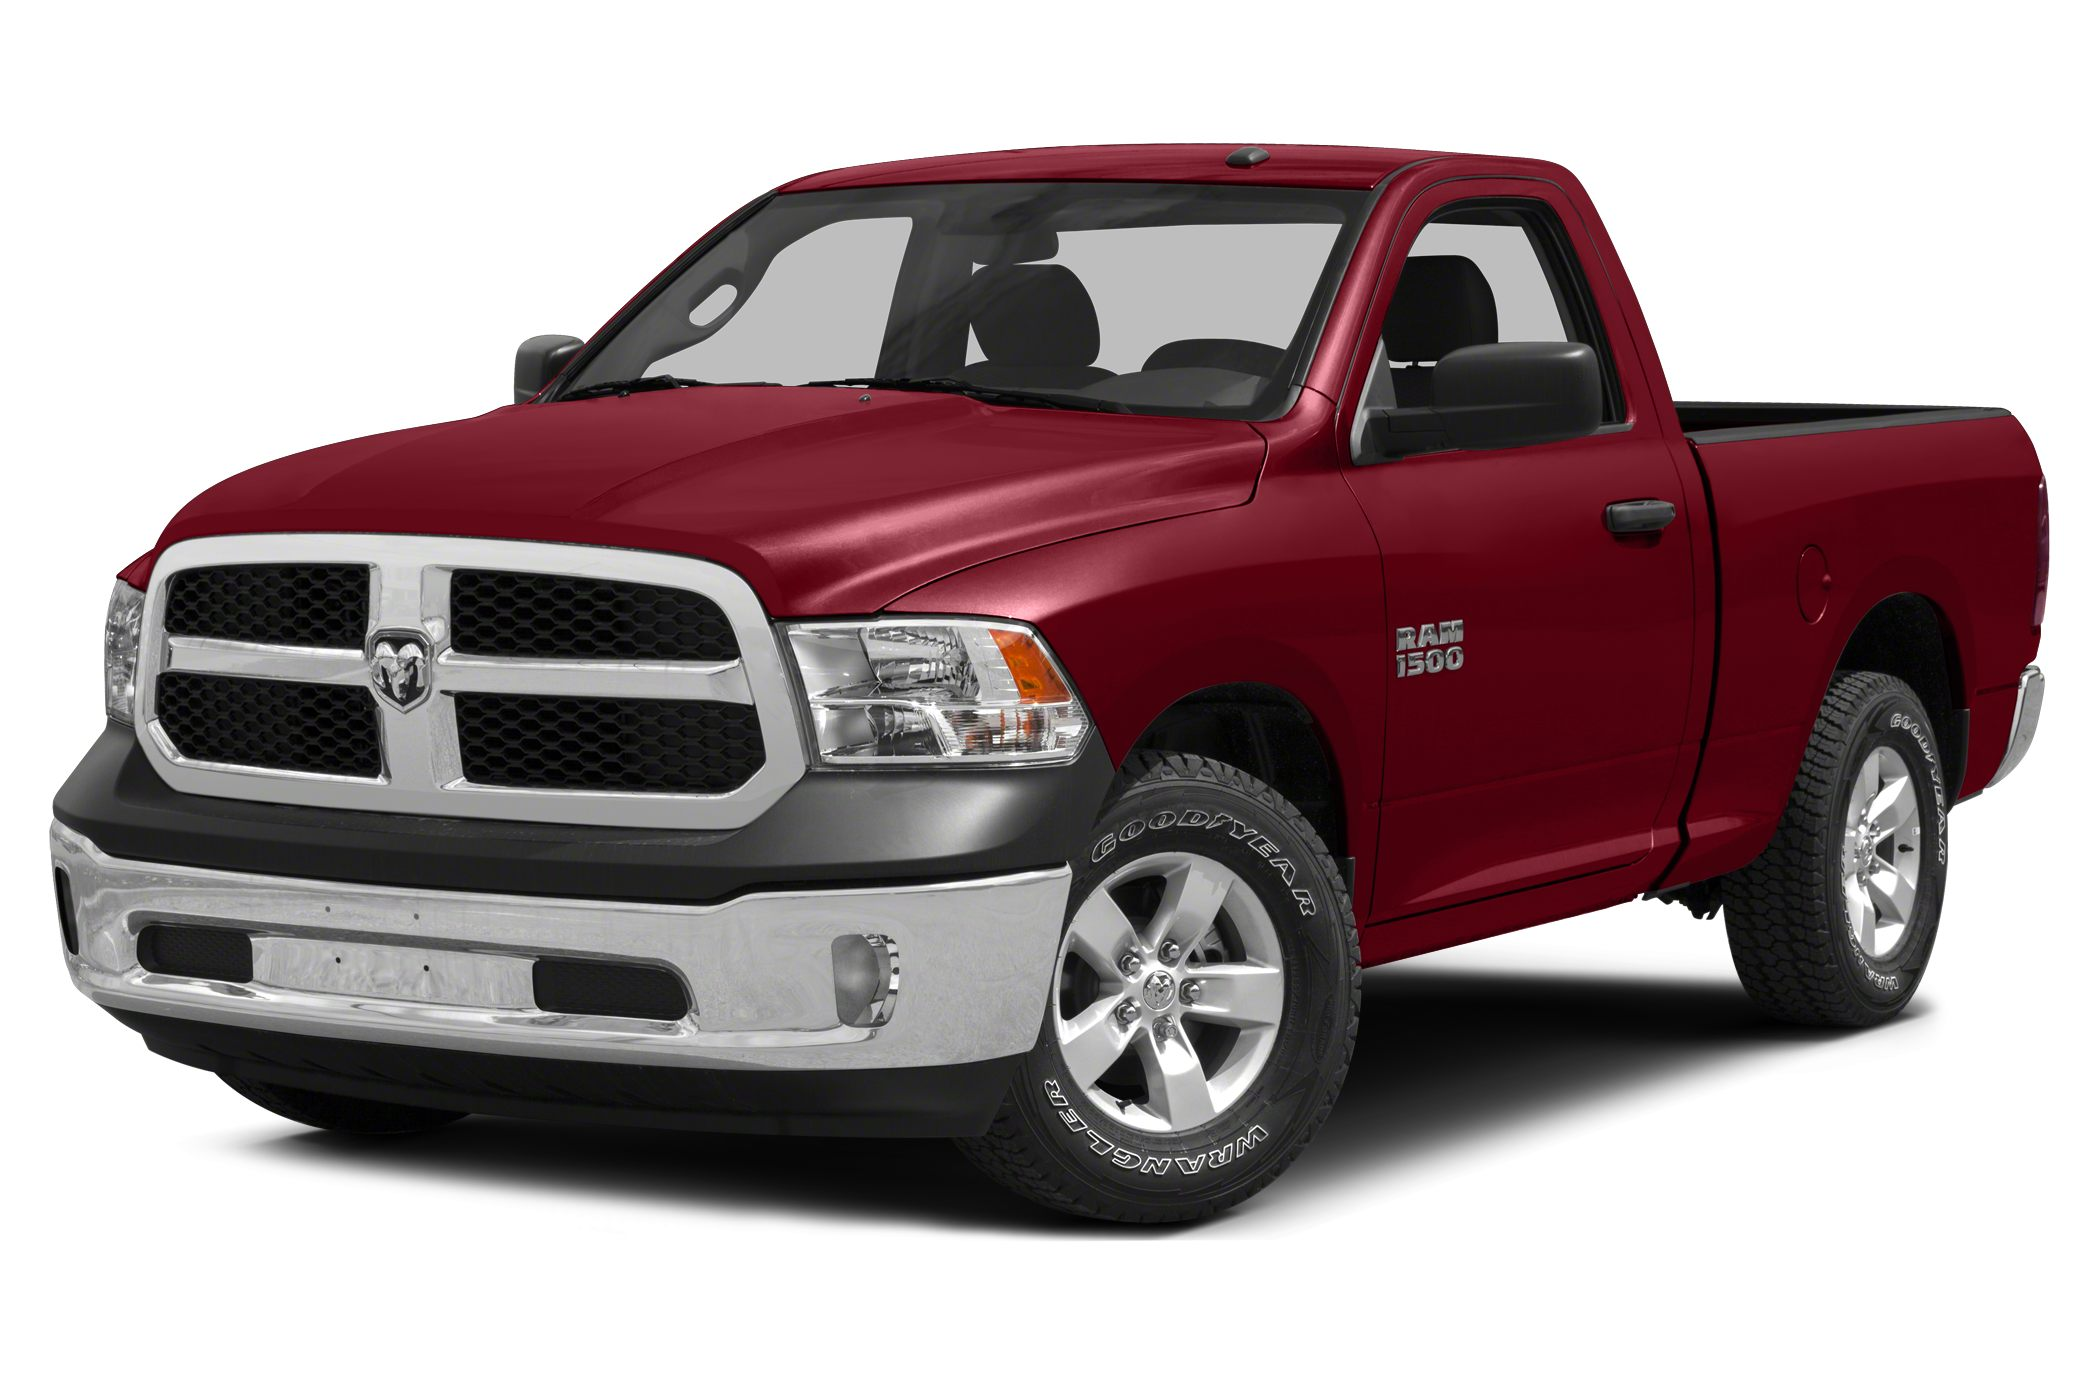 2013 RAM 1500 Tradesman Regular Cab Pickup for sale in Glen Burnie for $22,850 with 45,900 miles